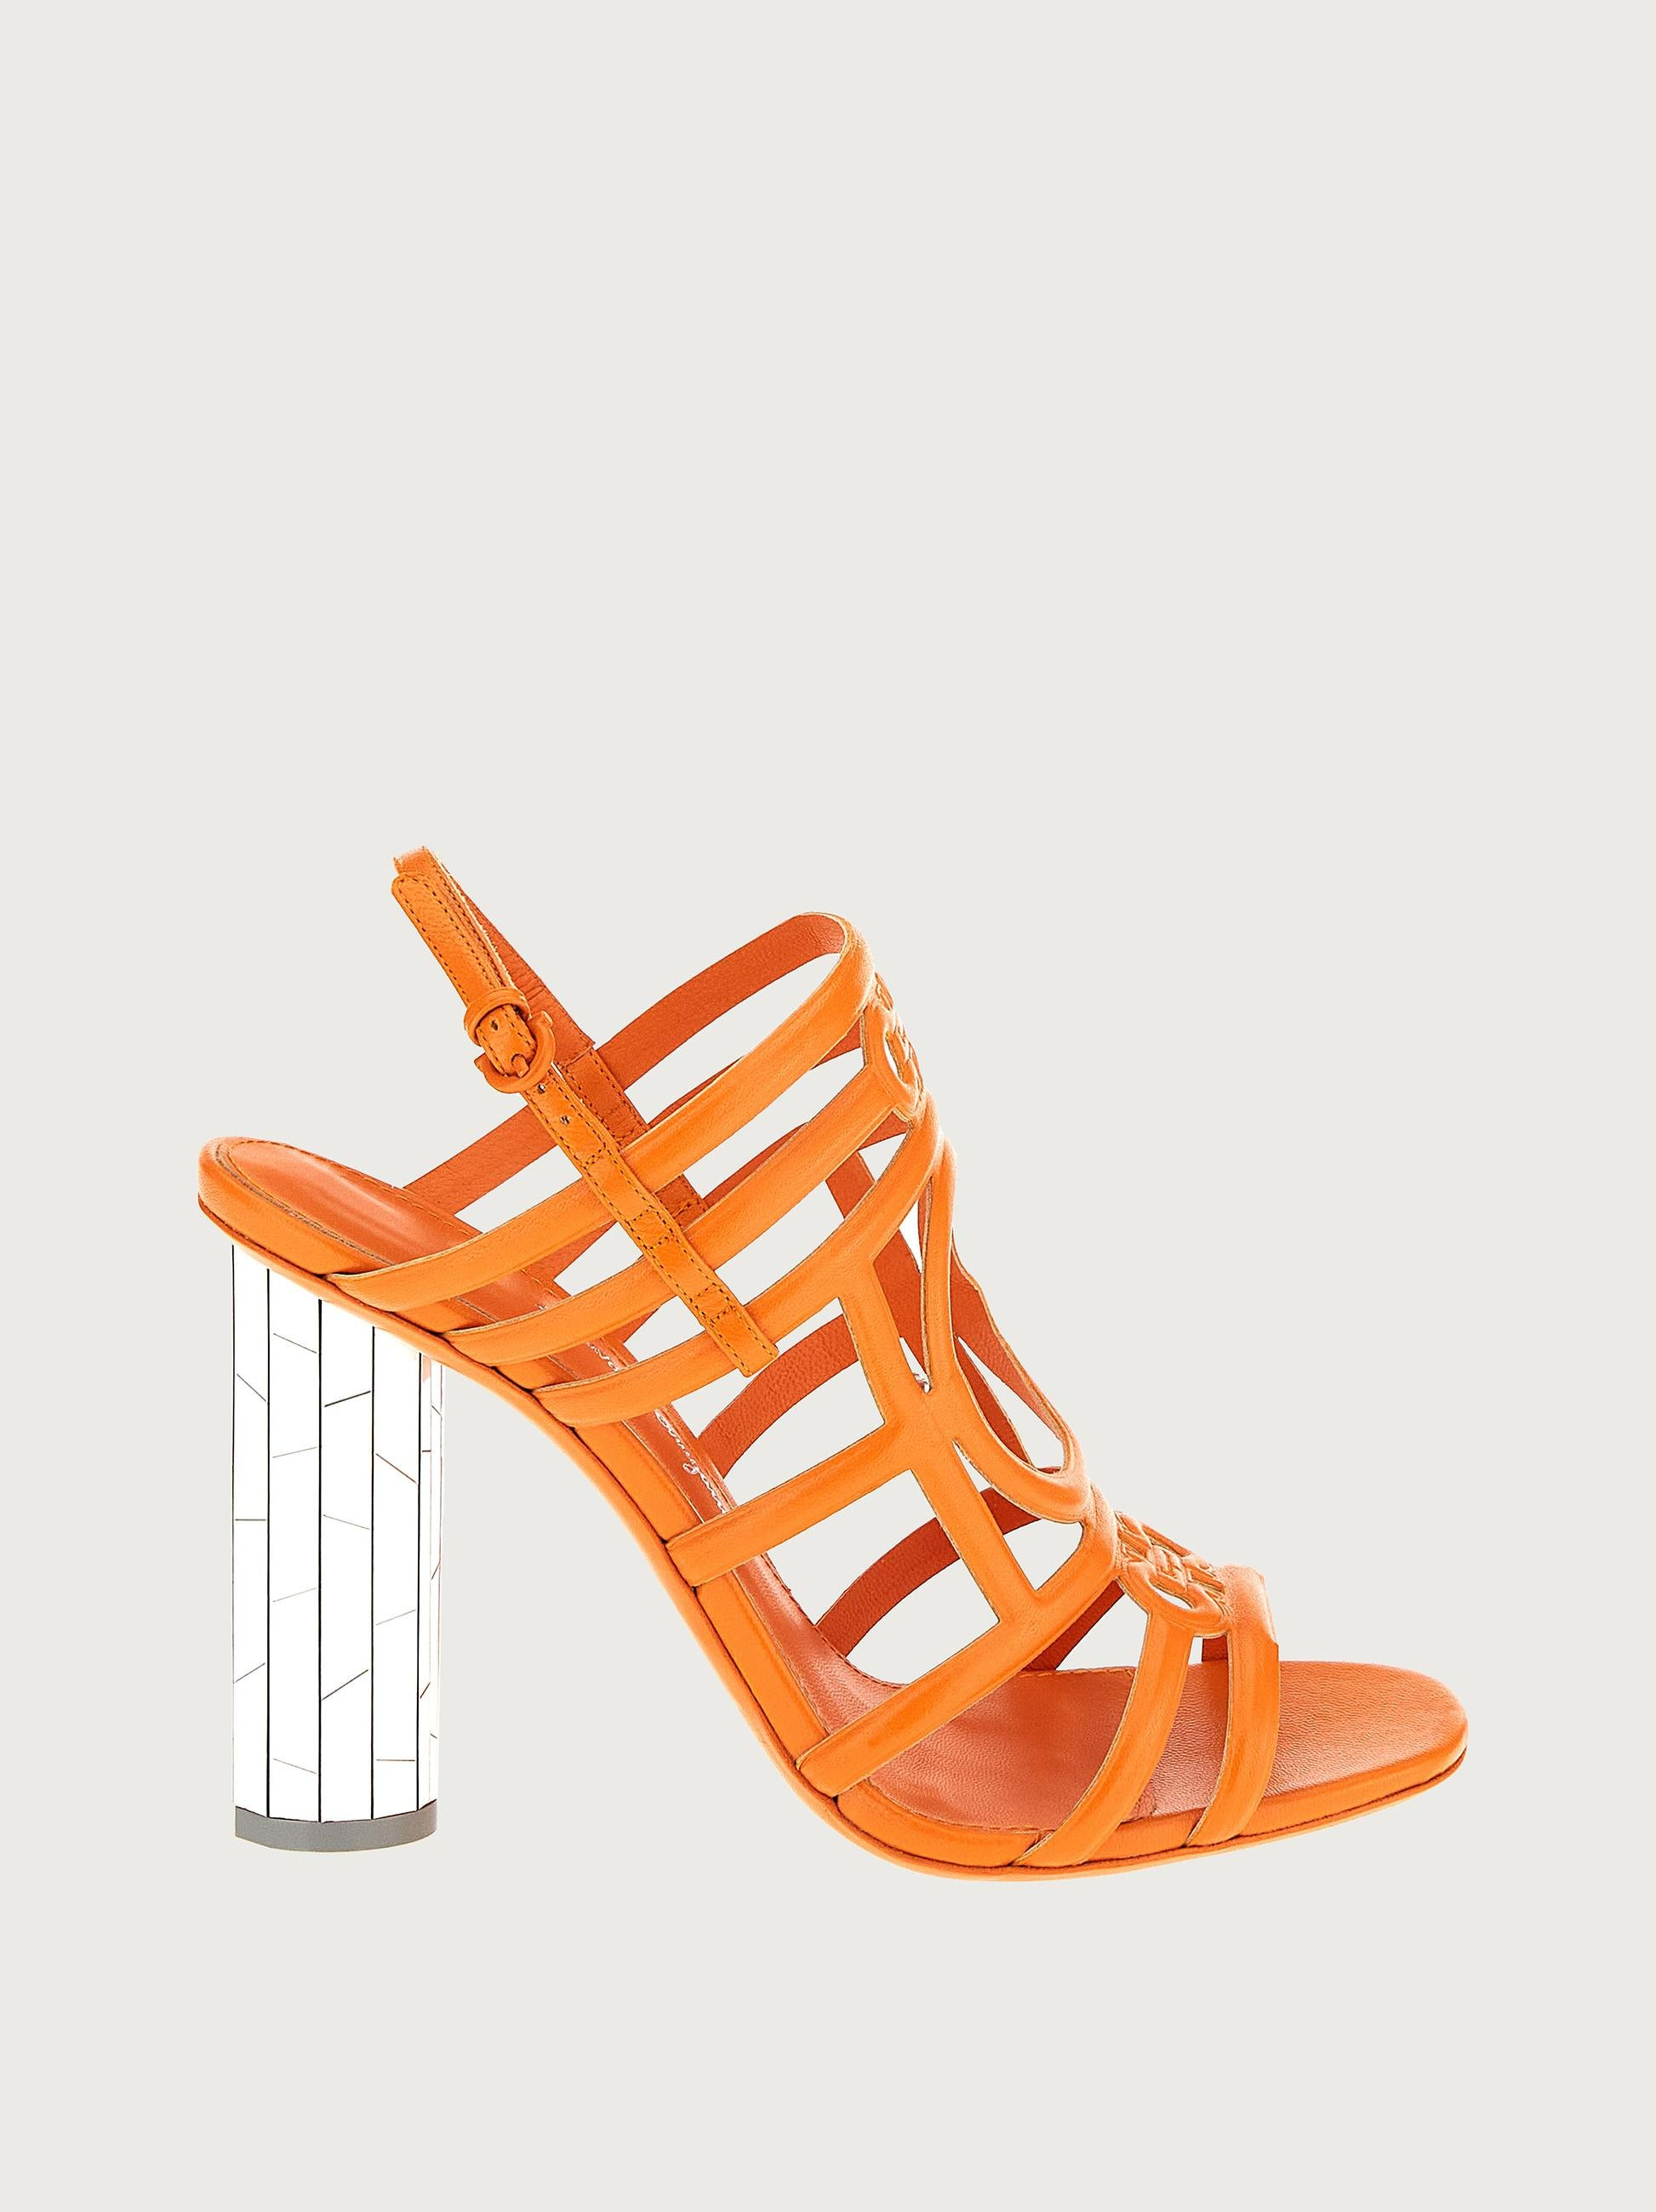 MIRRORED HEEL STRAPPY SANDAL